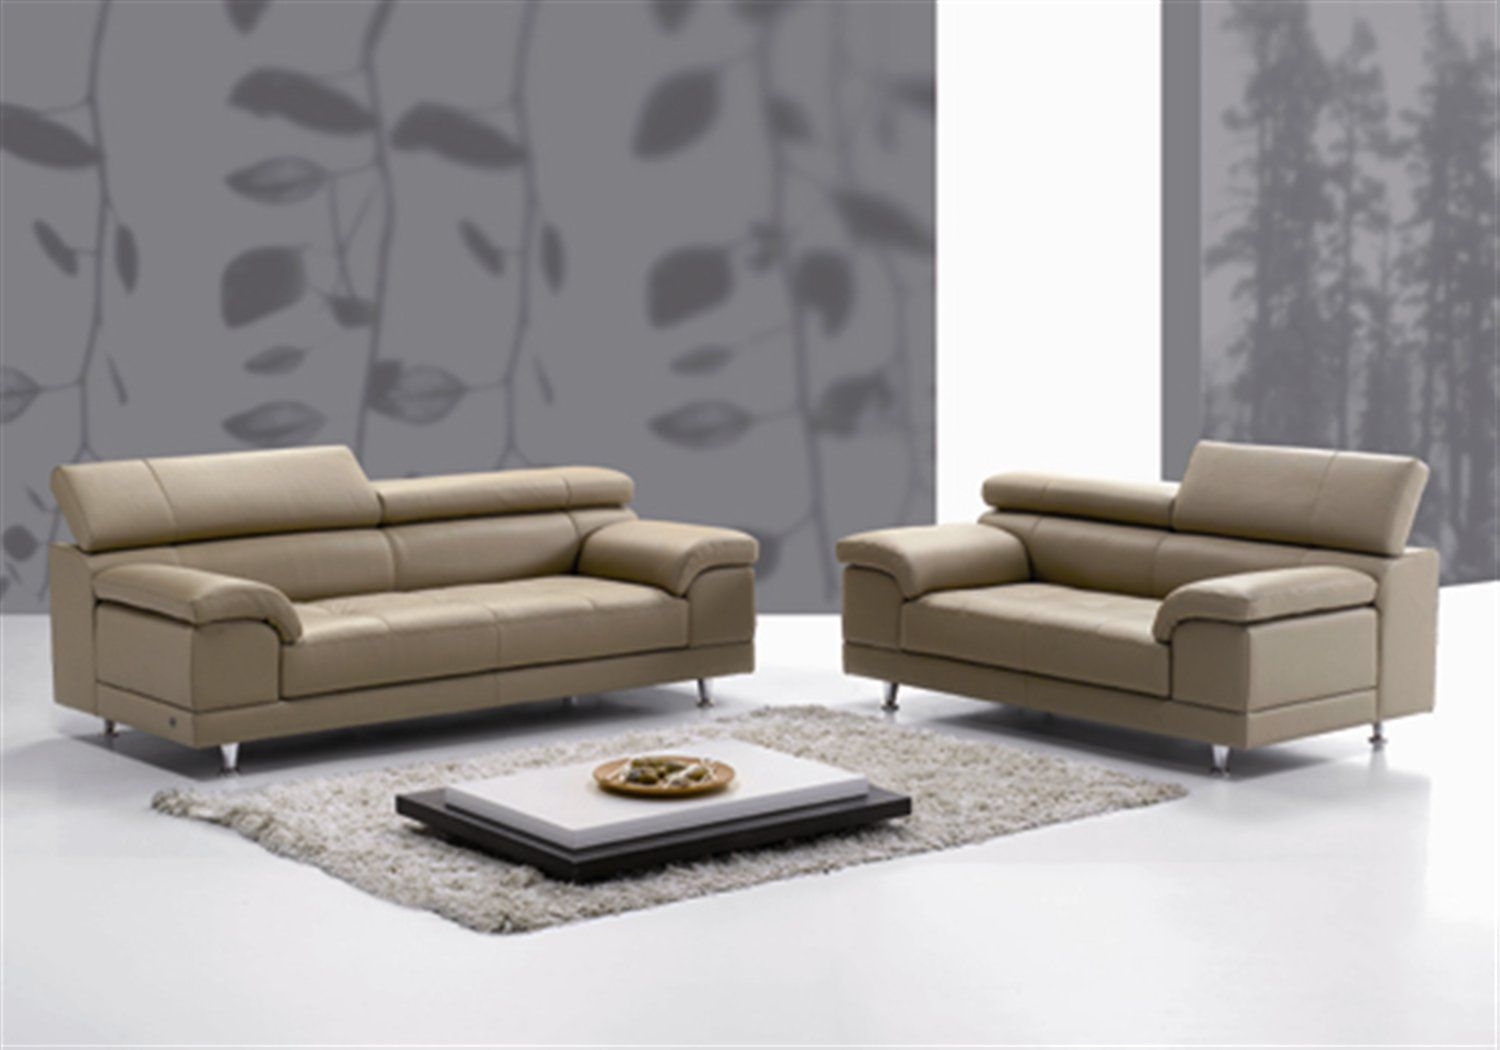 stunning piquattro leather italian sofas idea ground coffee table